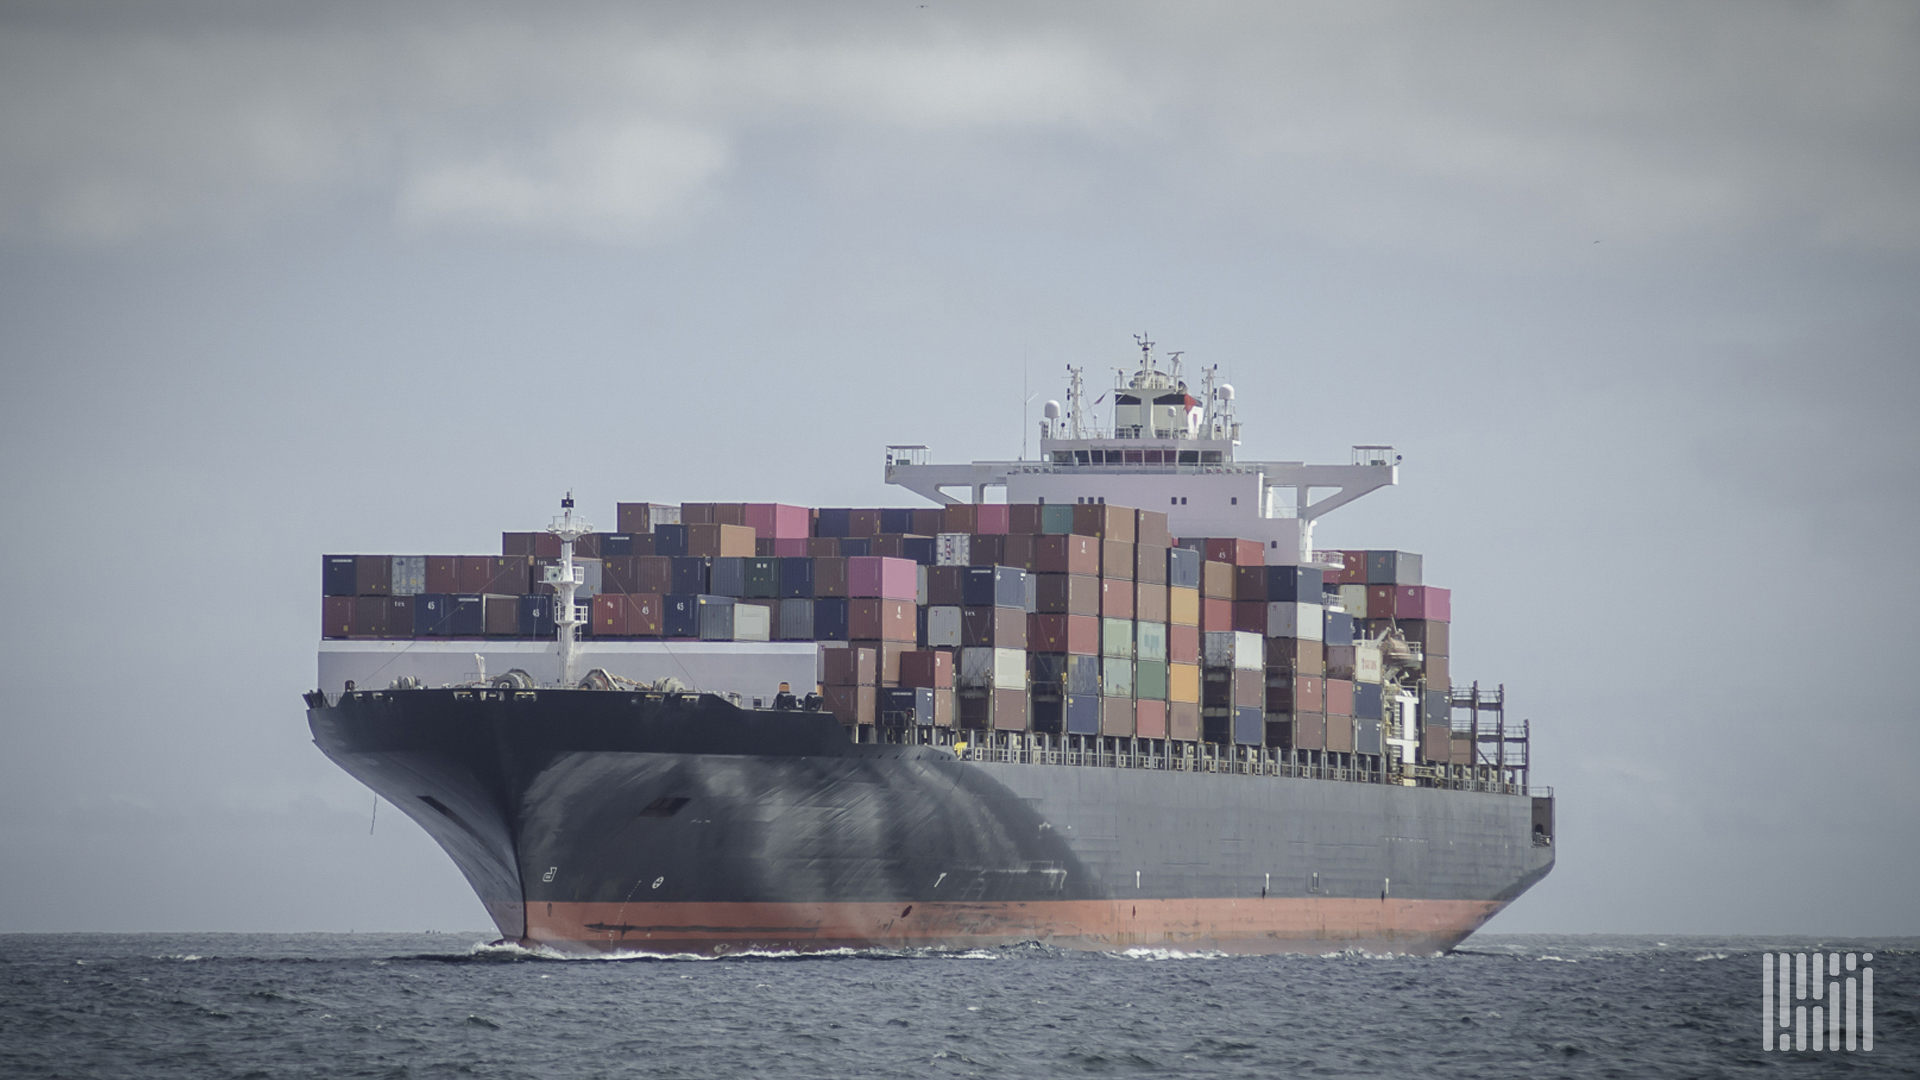 More container imports on the way